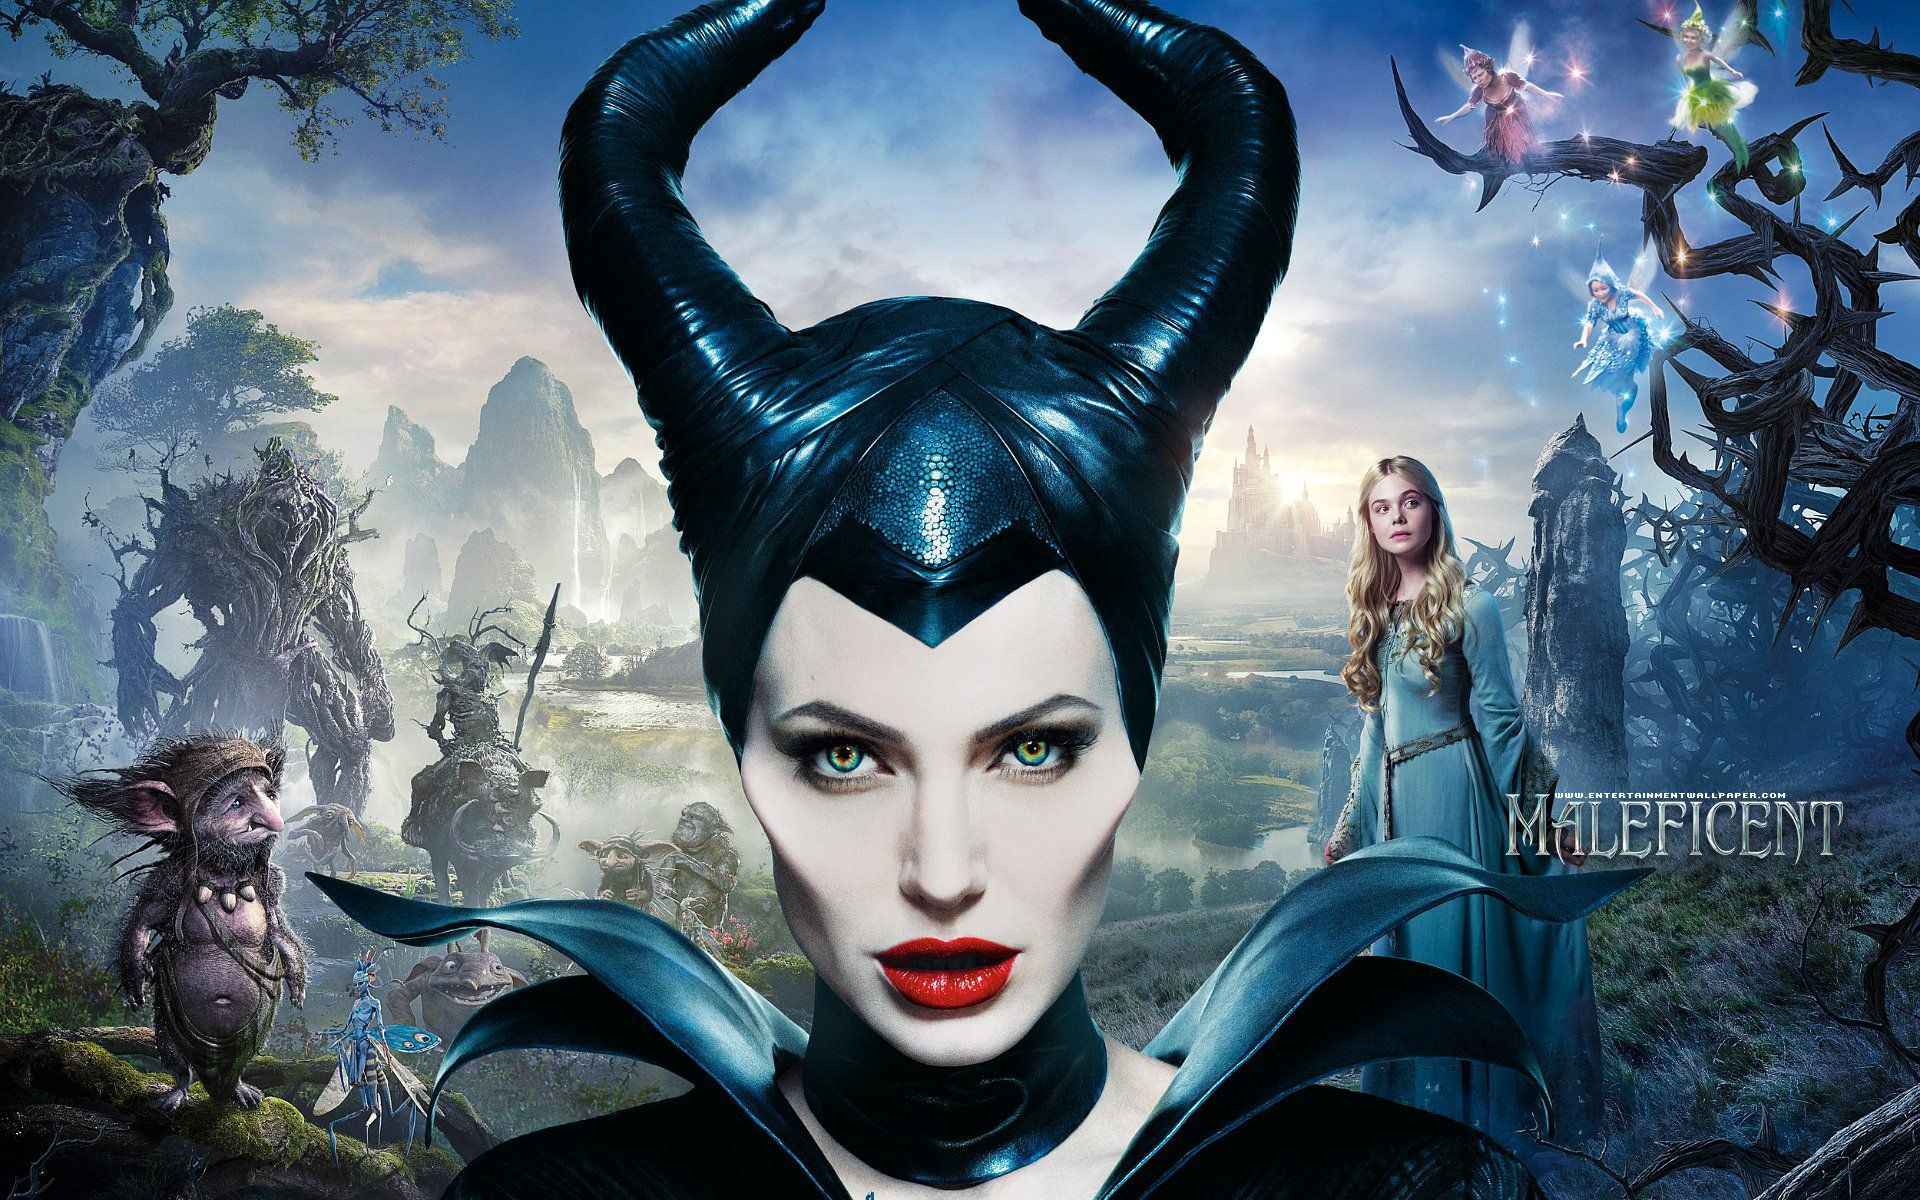 Maleficent Hd Wallpapers Top Free Maleficent Hd